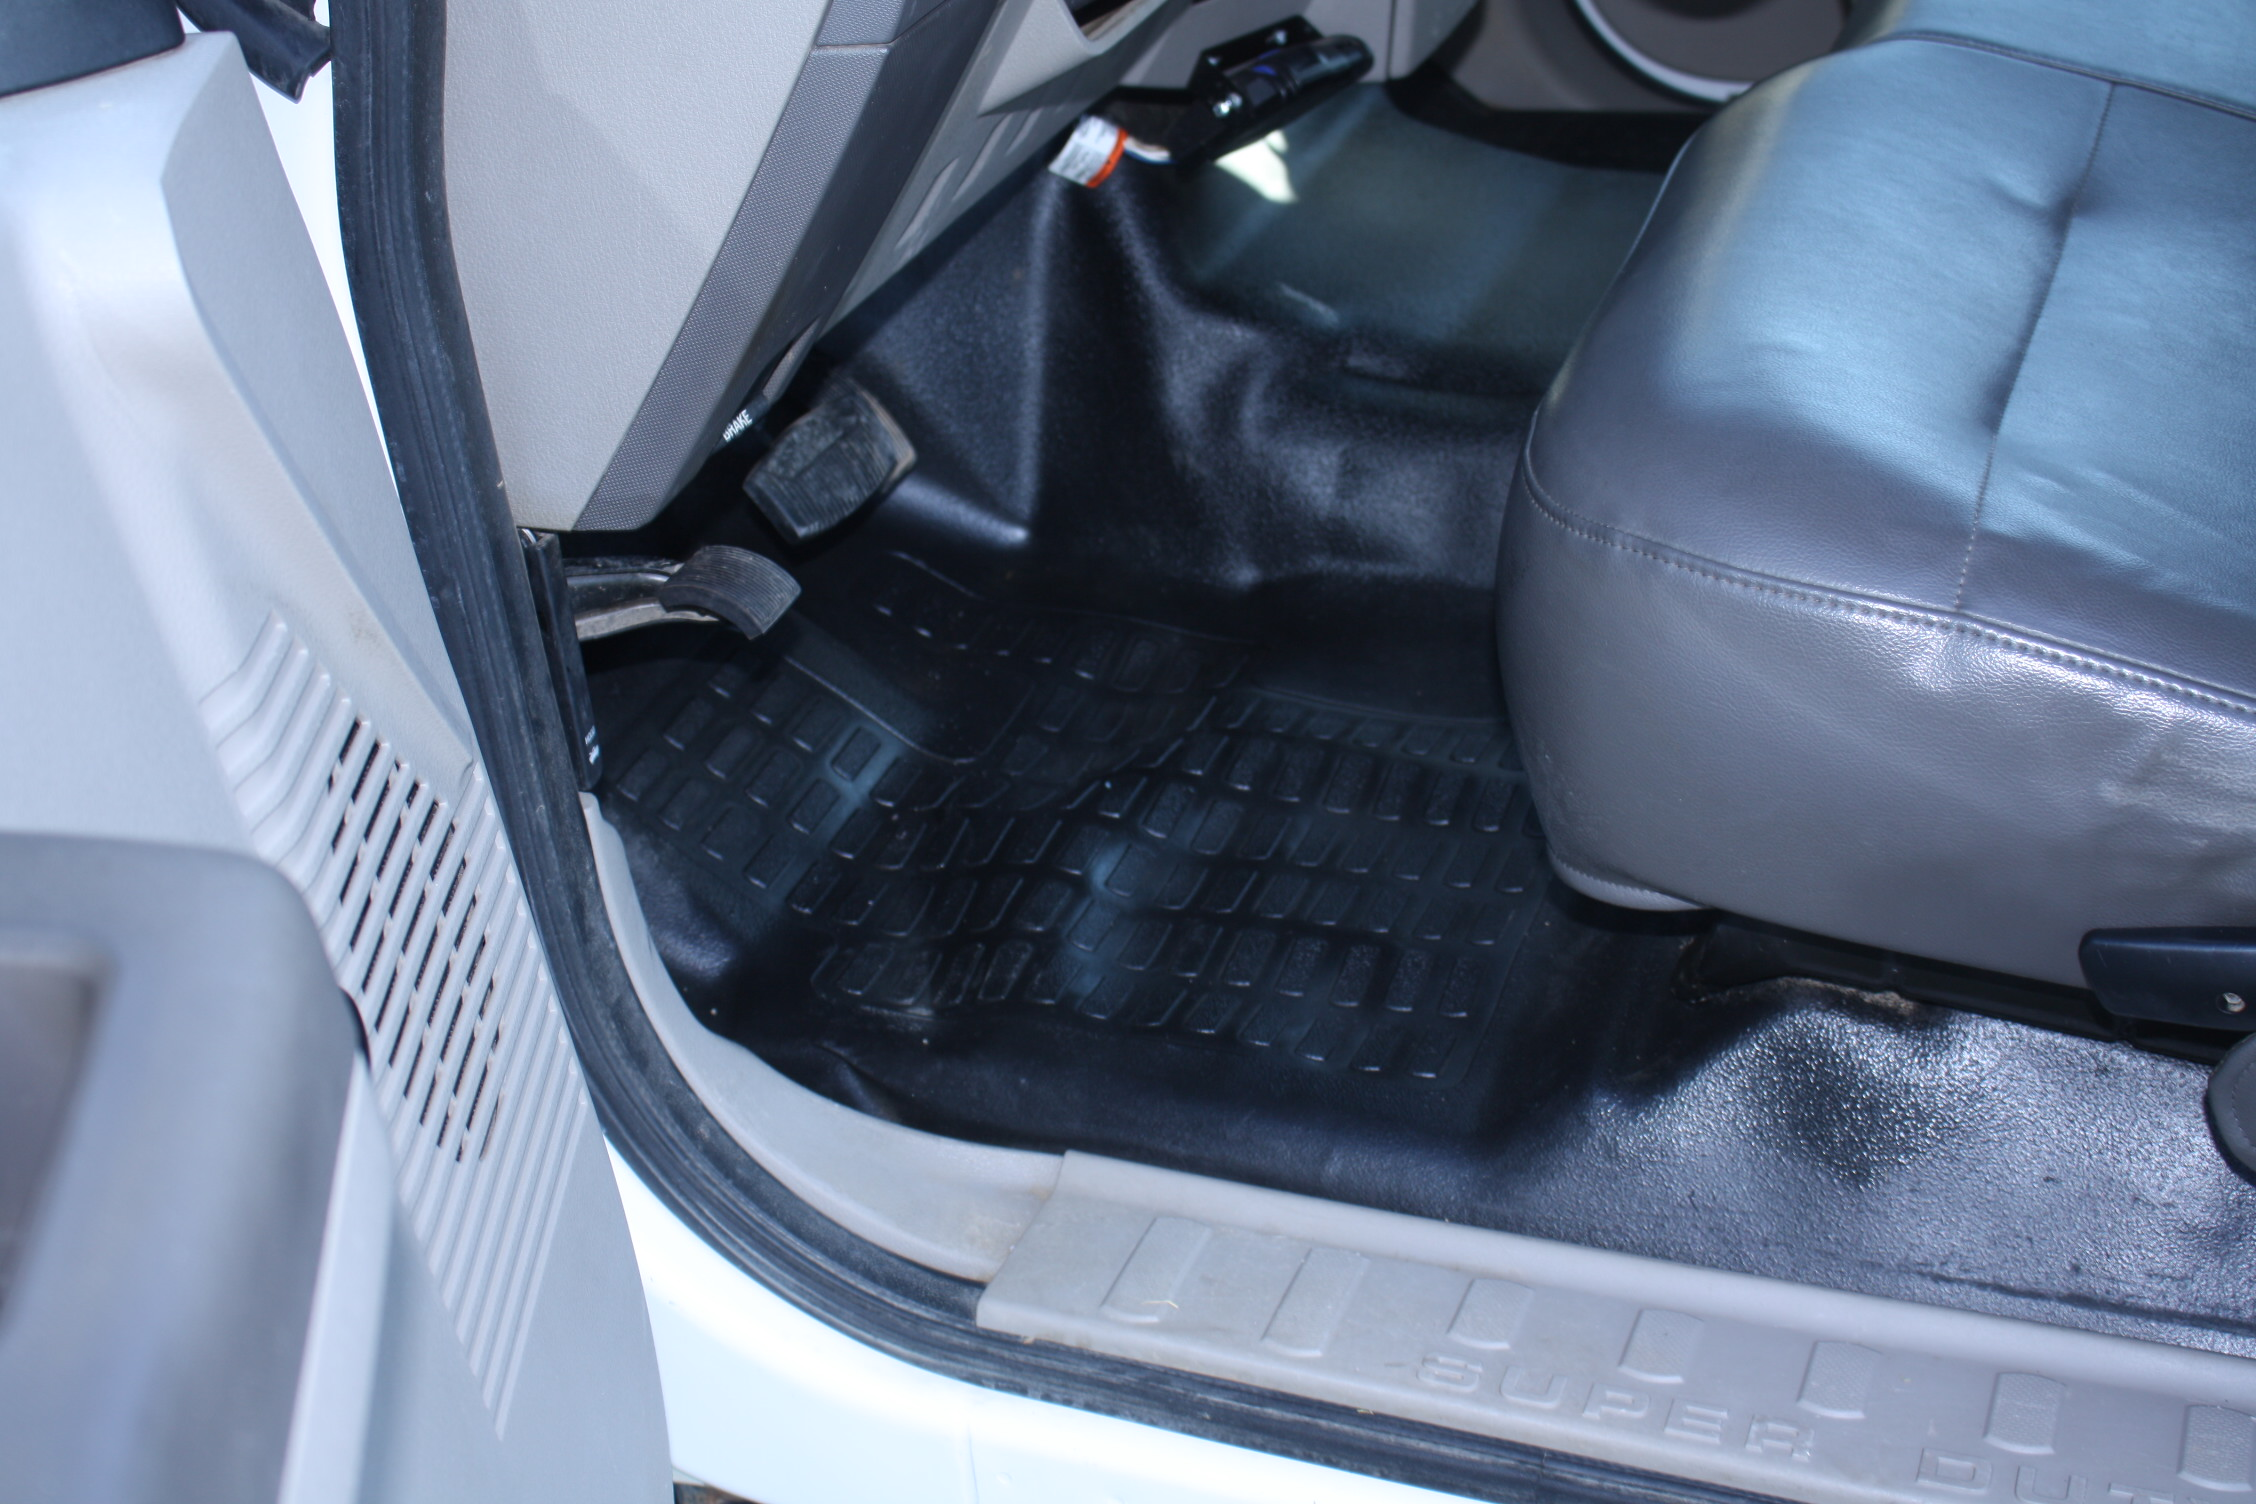 IMG 1216 - 2009 FORD F350 WITH KNAPHEIDE ENCLOSED UTILITY